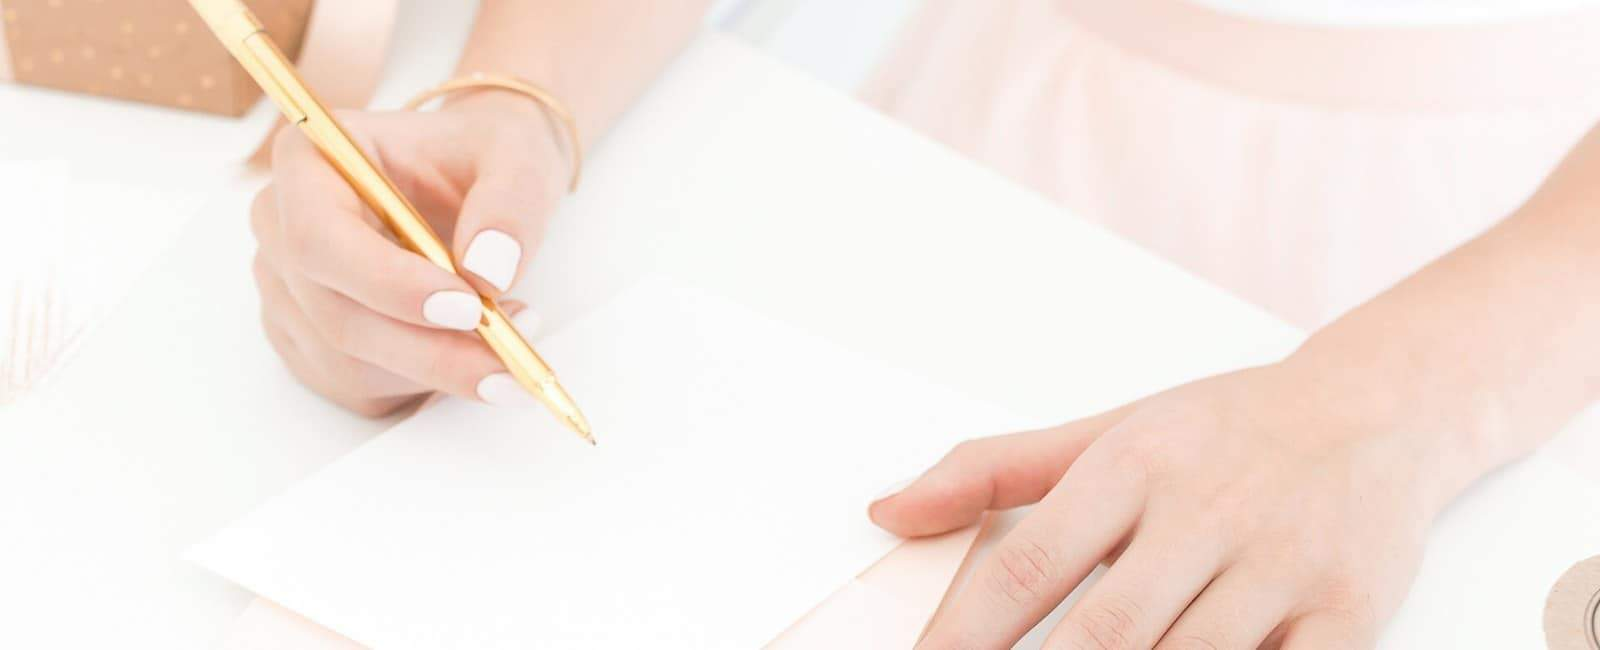 A woman in peach writing on paper with a gold pen